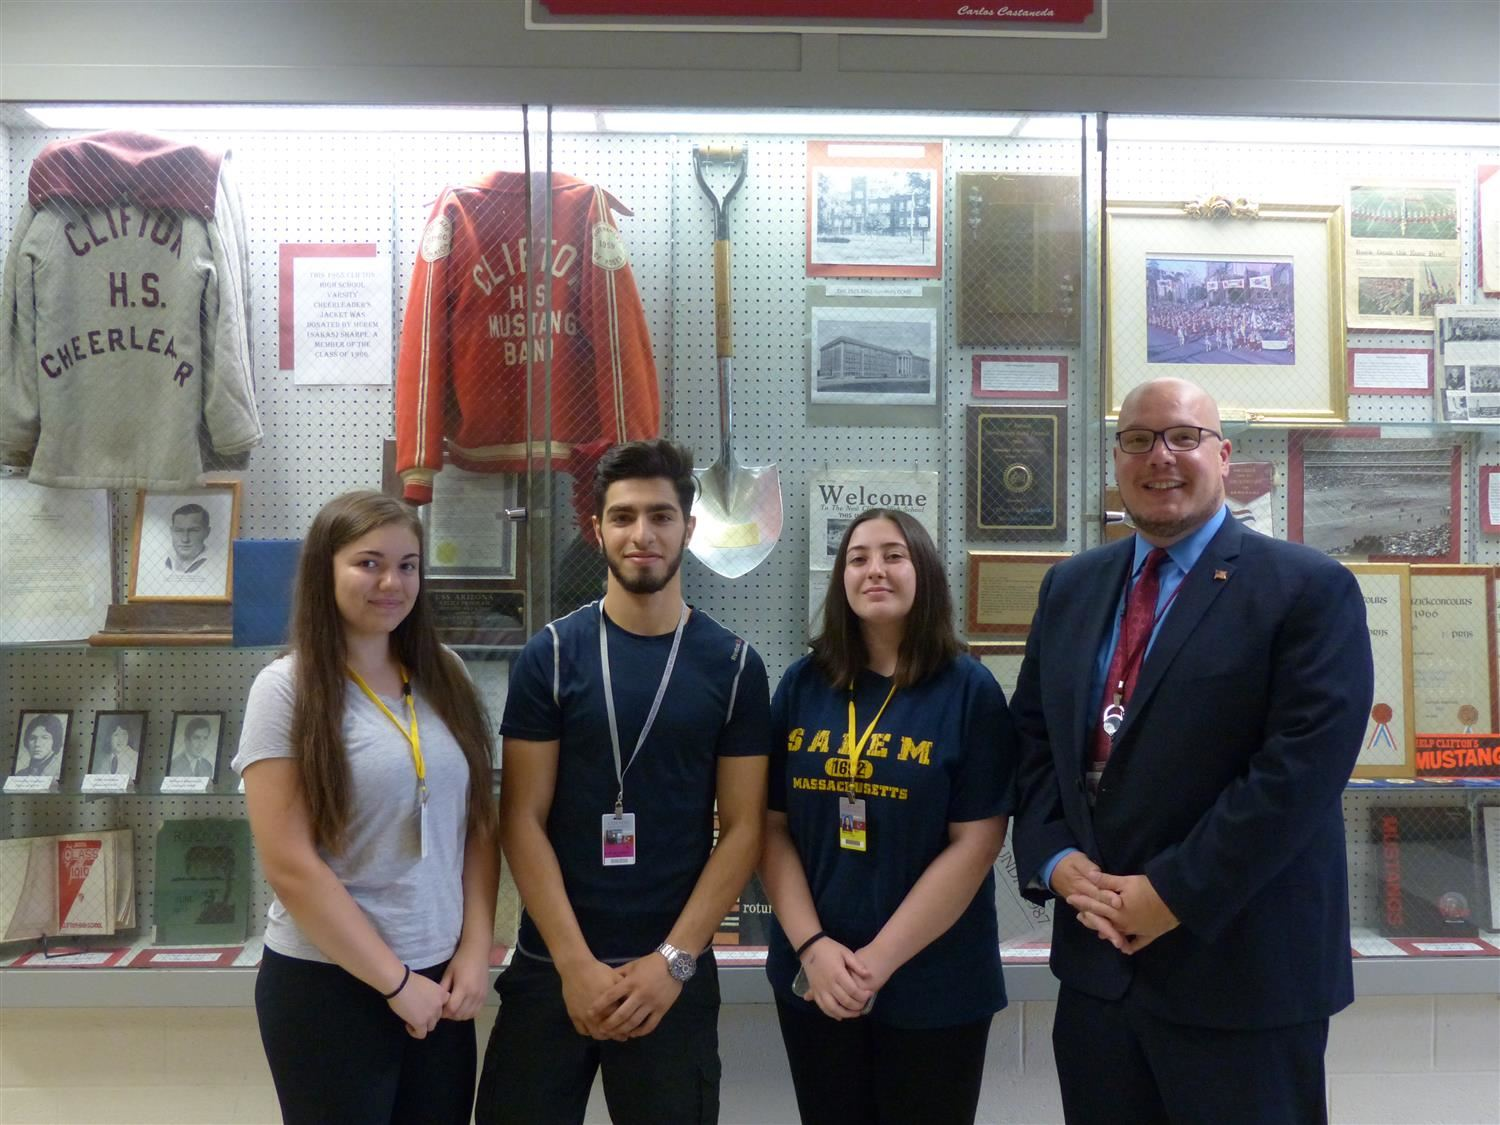 CHS Students with Dr. Robertozzi in front of display case